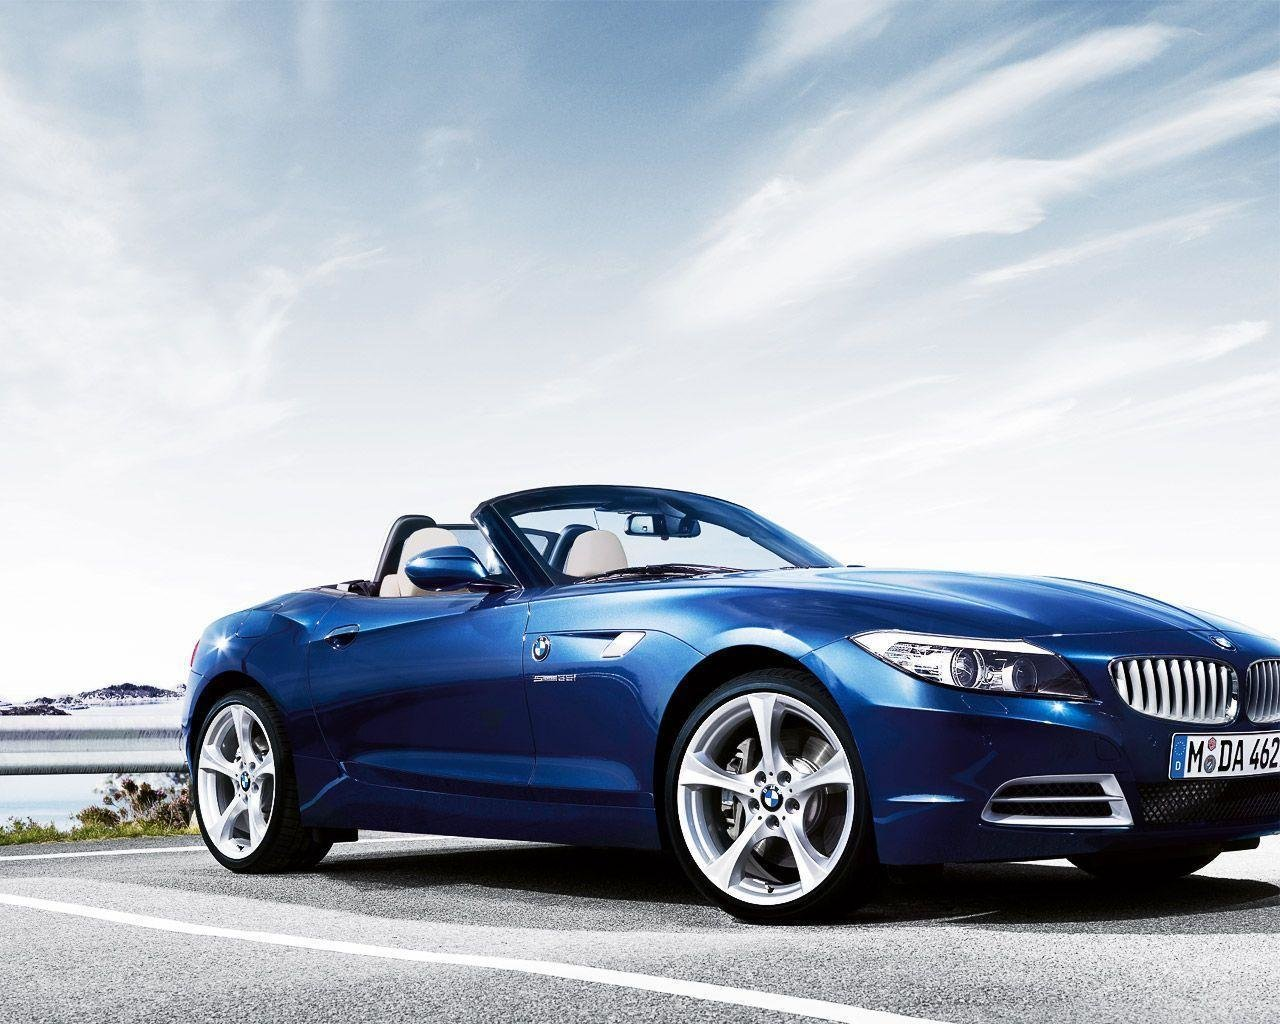 Latest Bmw Z4 Wallpapers Wallpaper Cave Free Download Original 1024 x 768